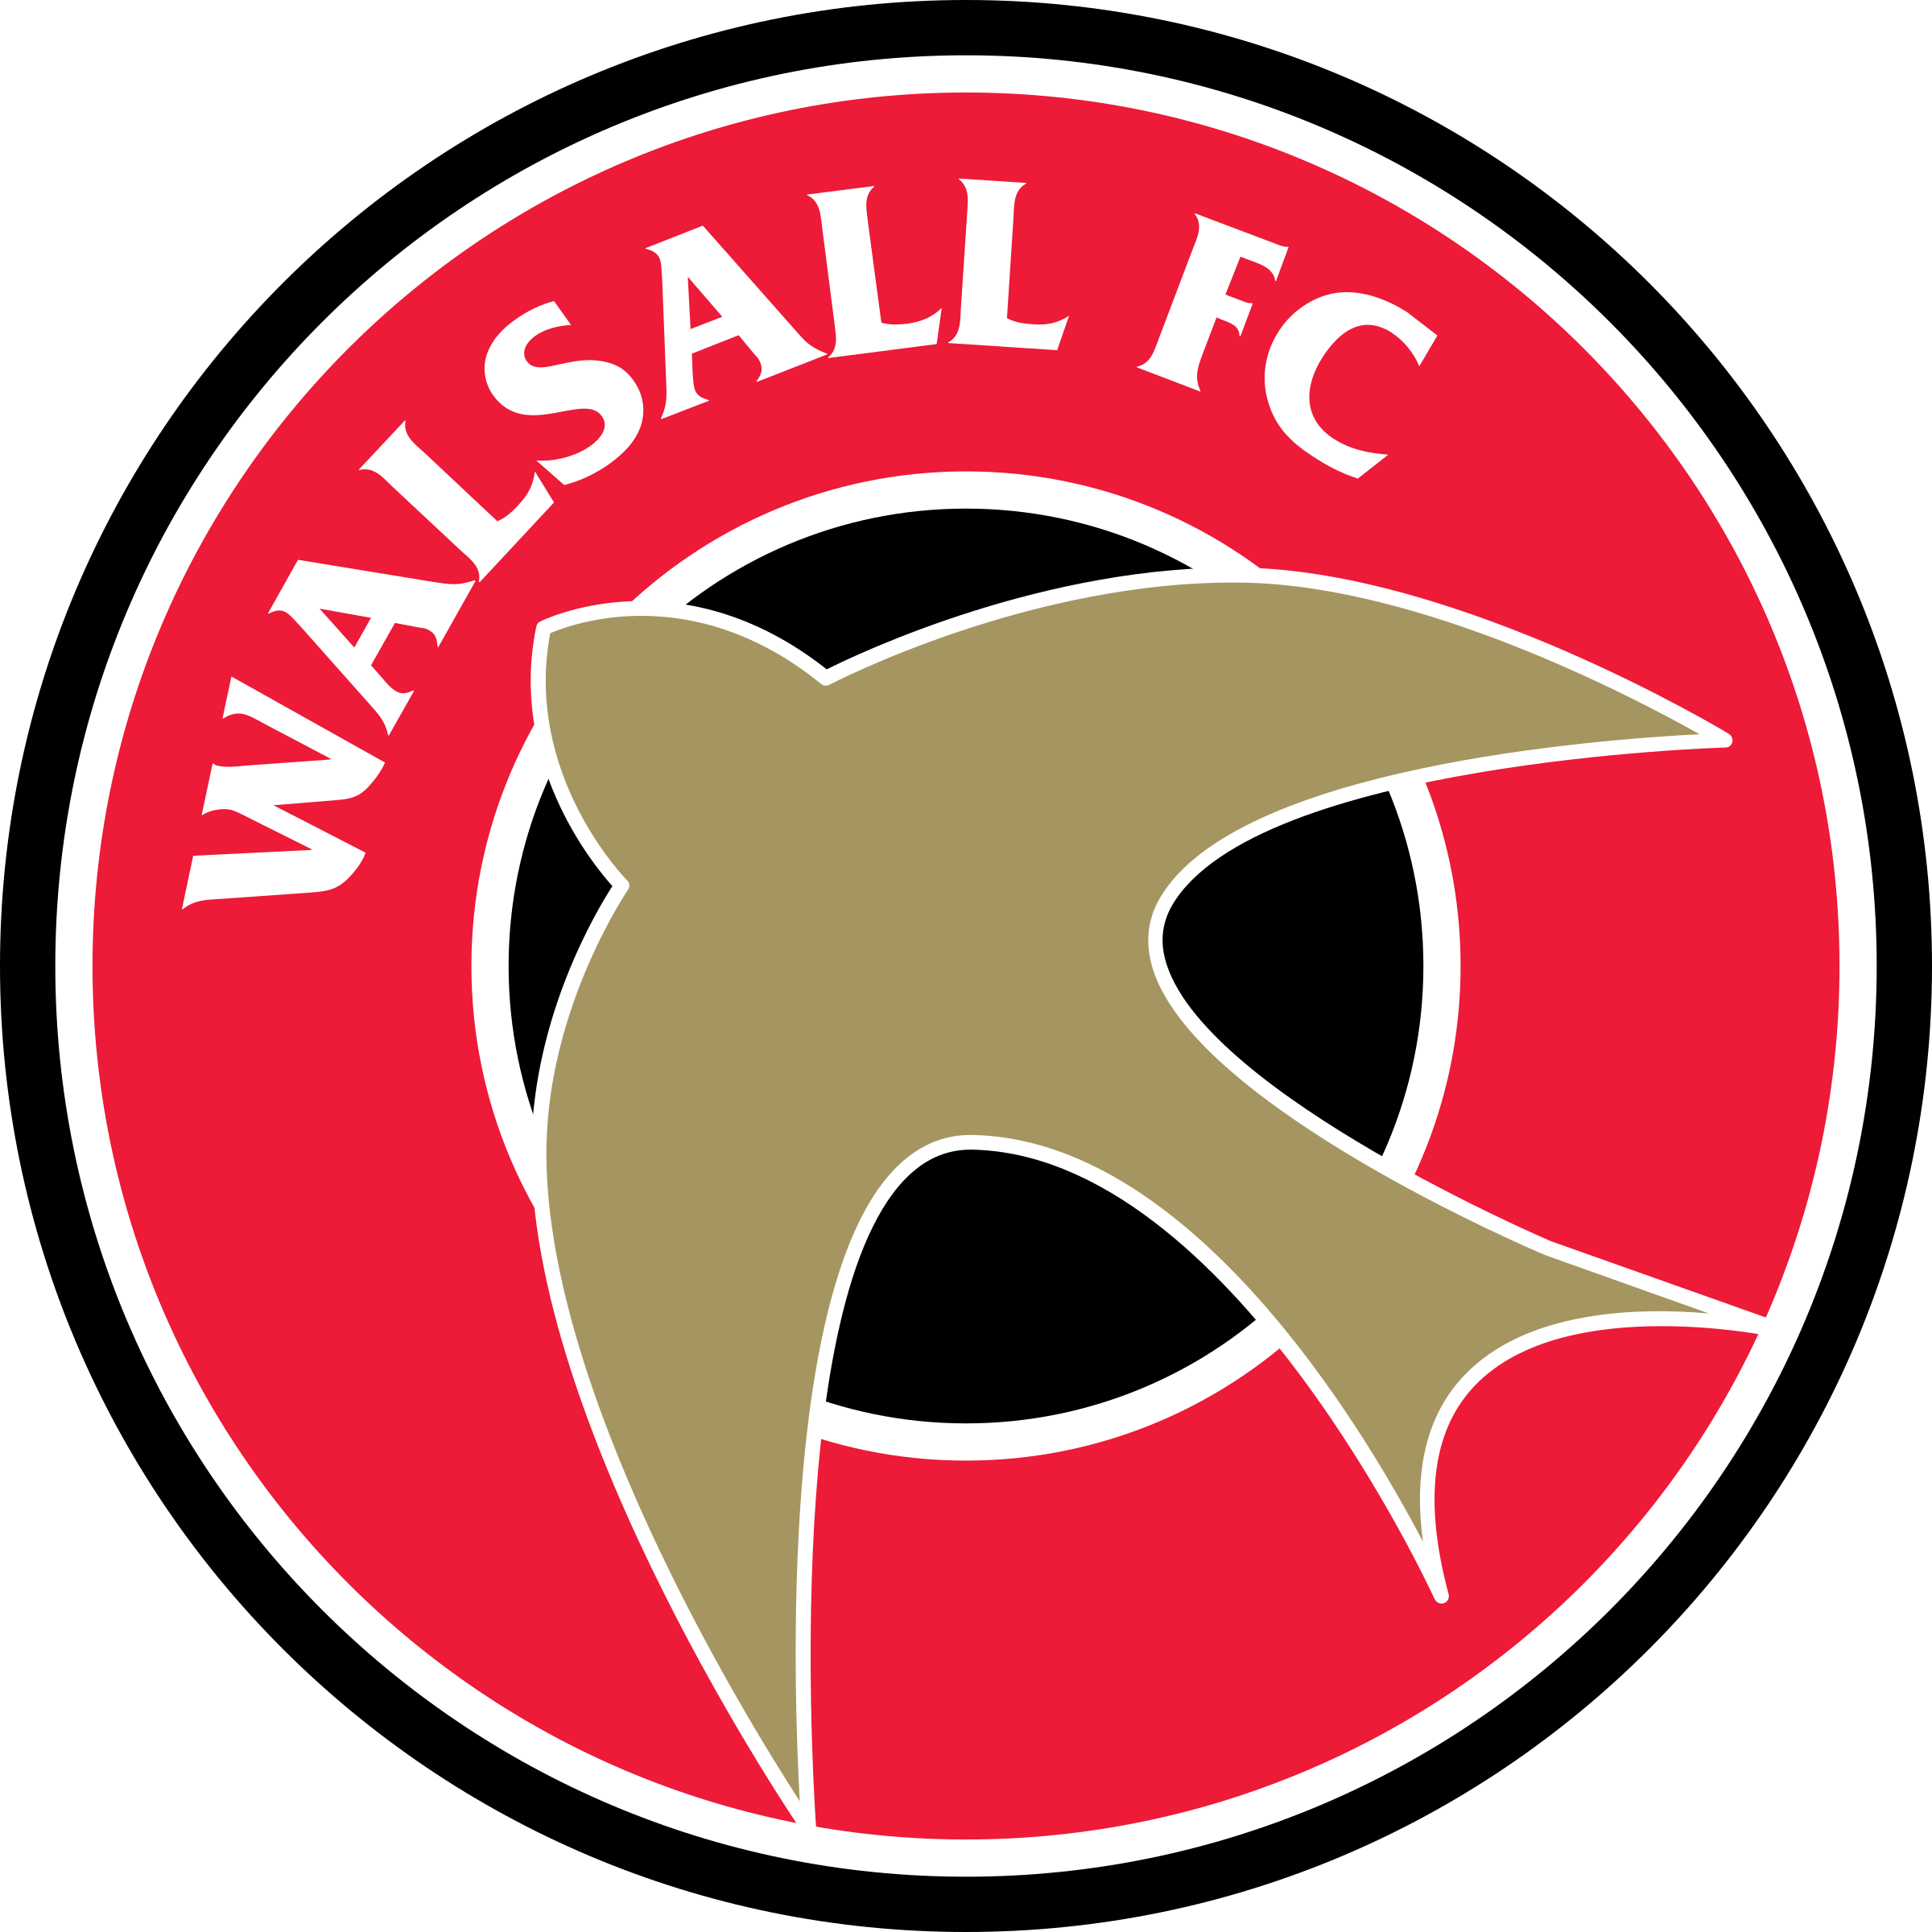 Newport Vs Walsall H2h 24 Nov 2020 Head To Head Stats Prediction